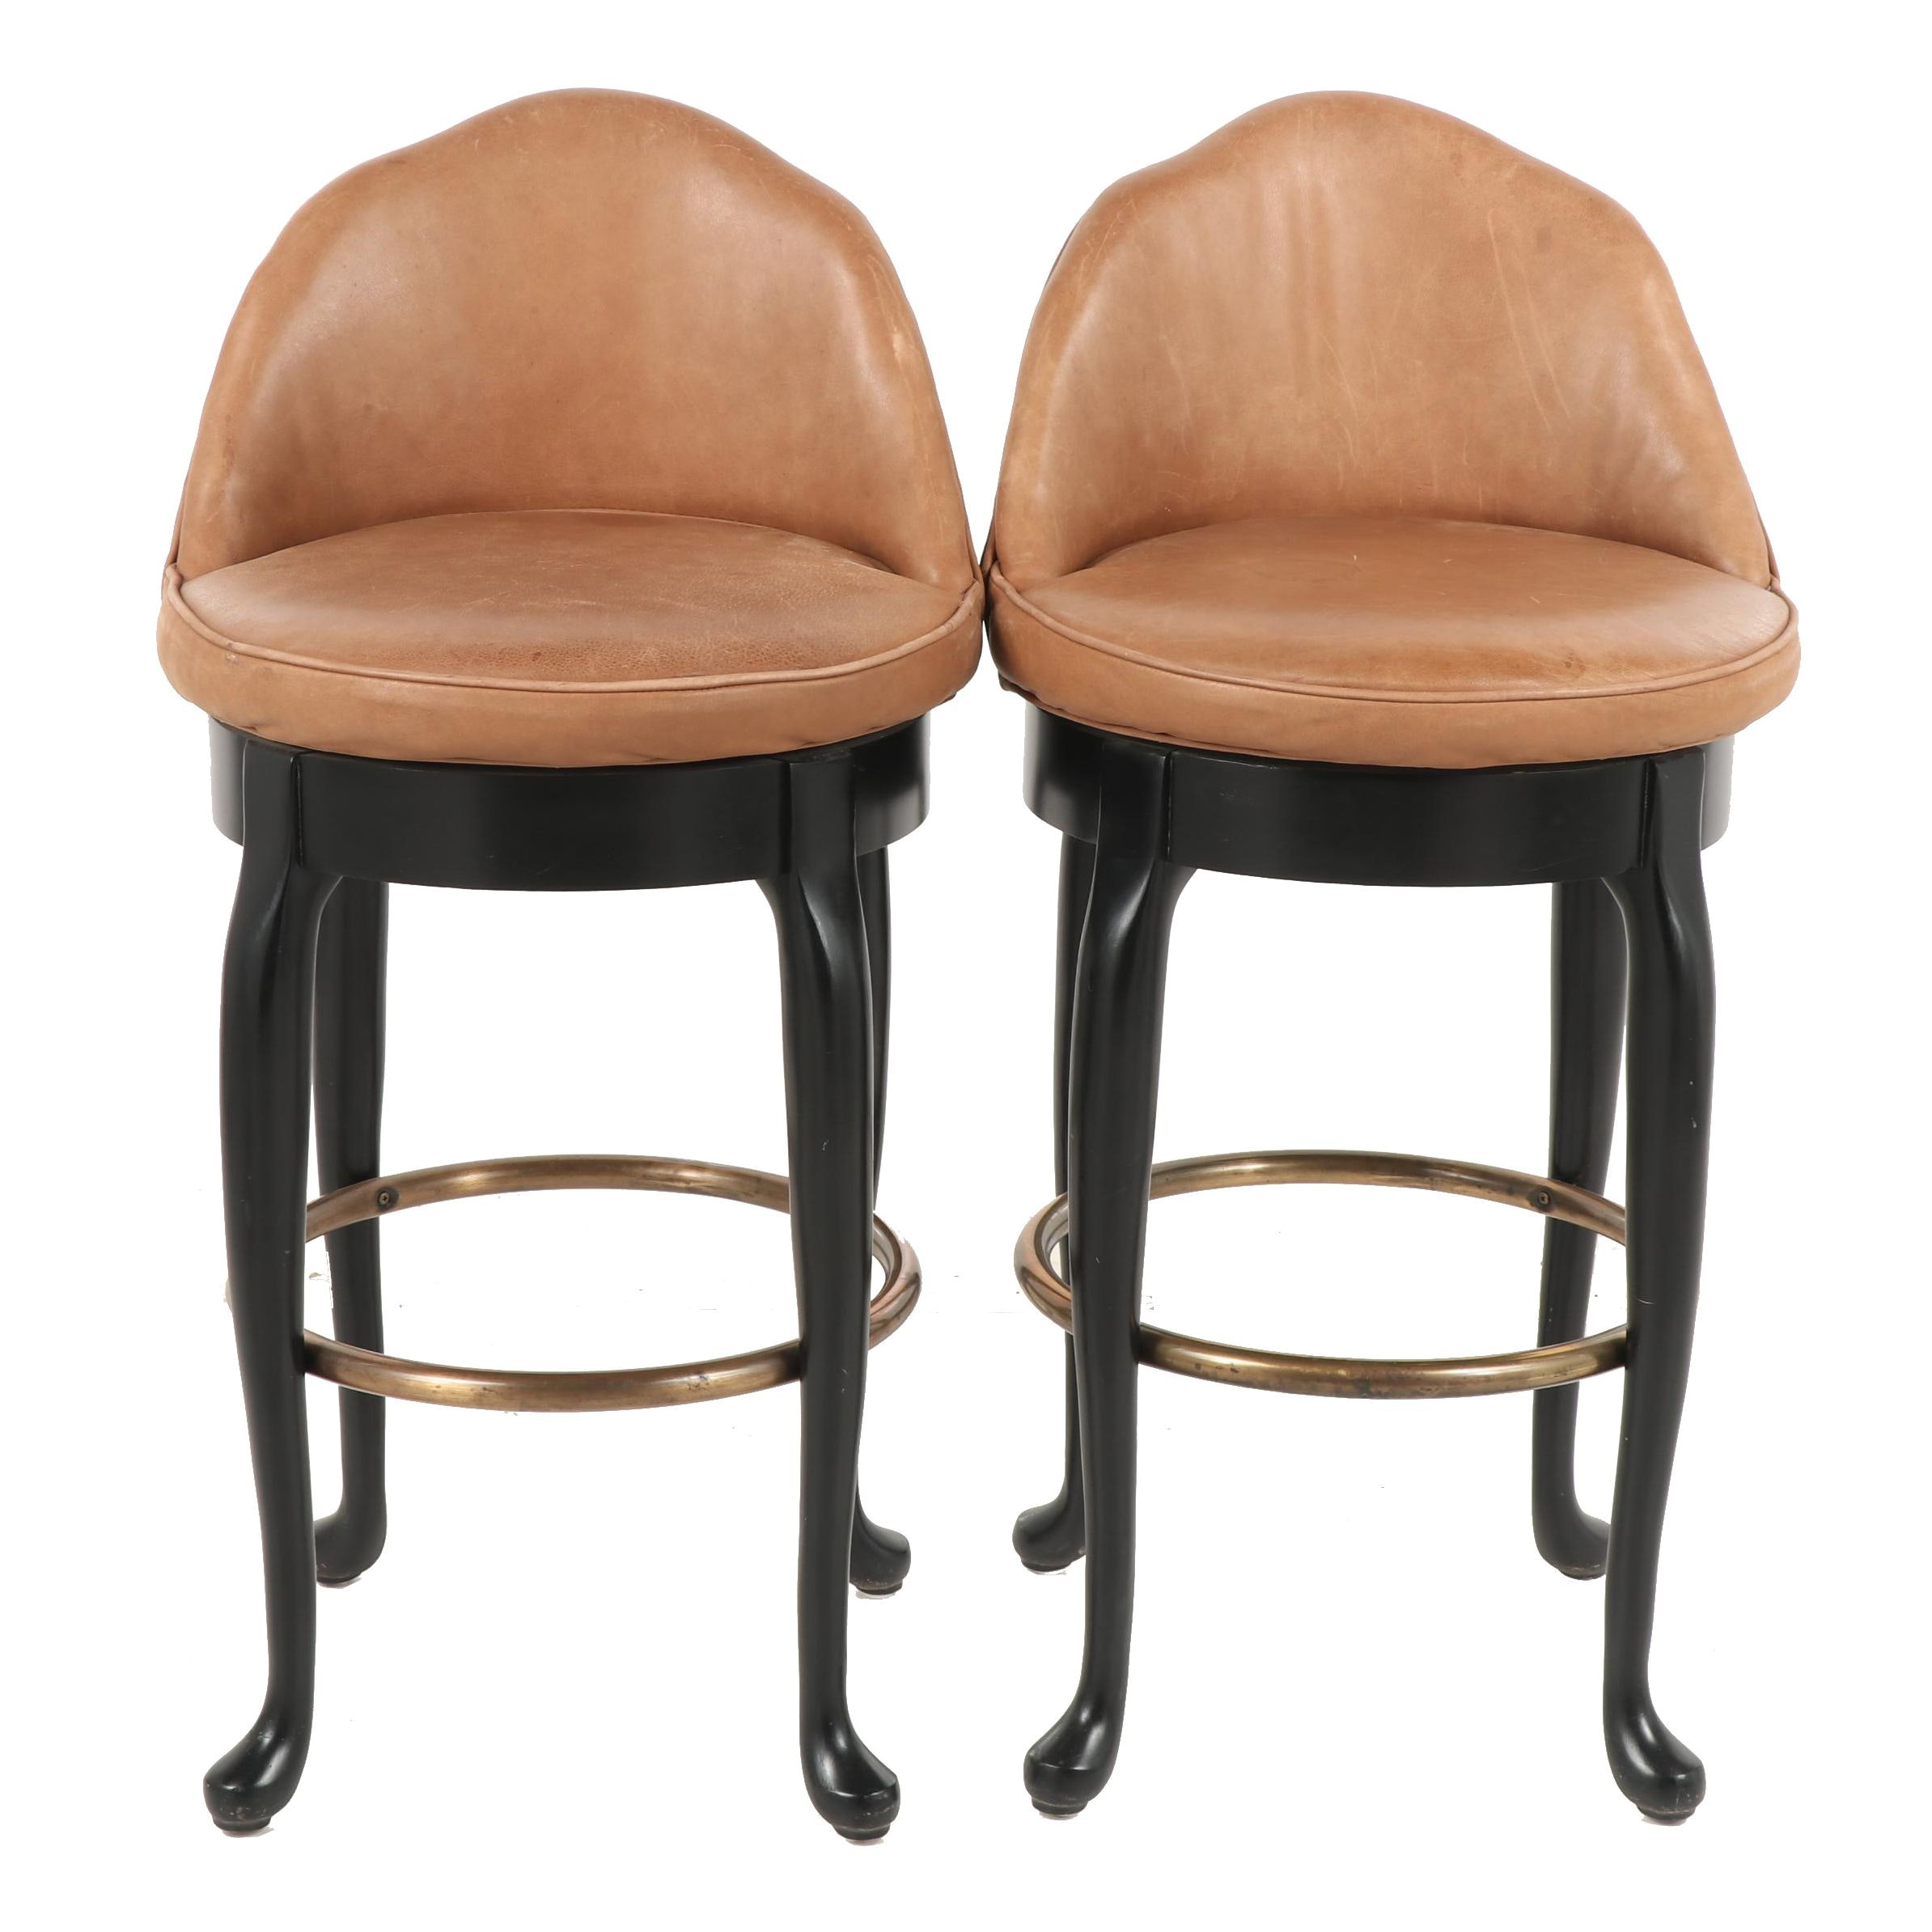 Hickory Barstools with Leather Upholstery